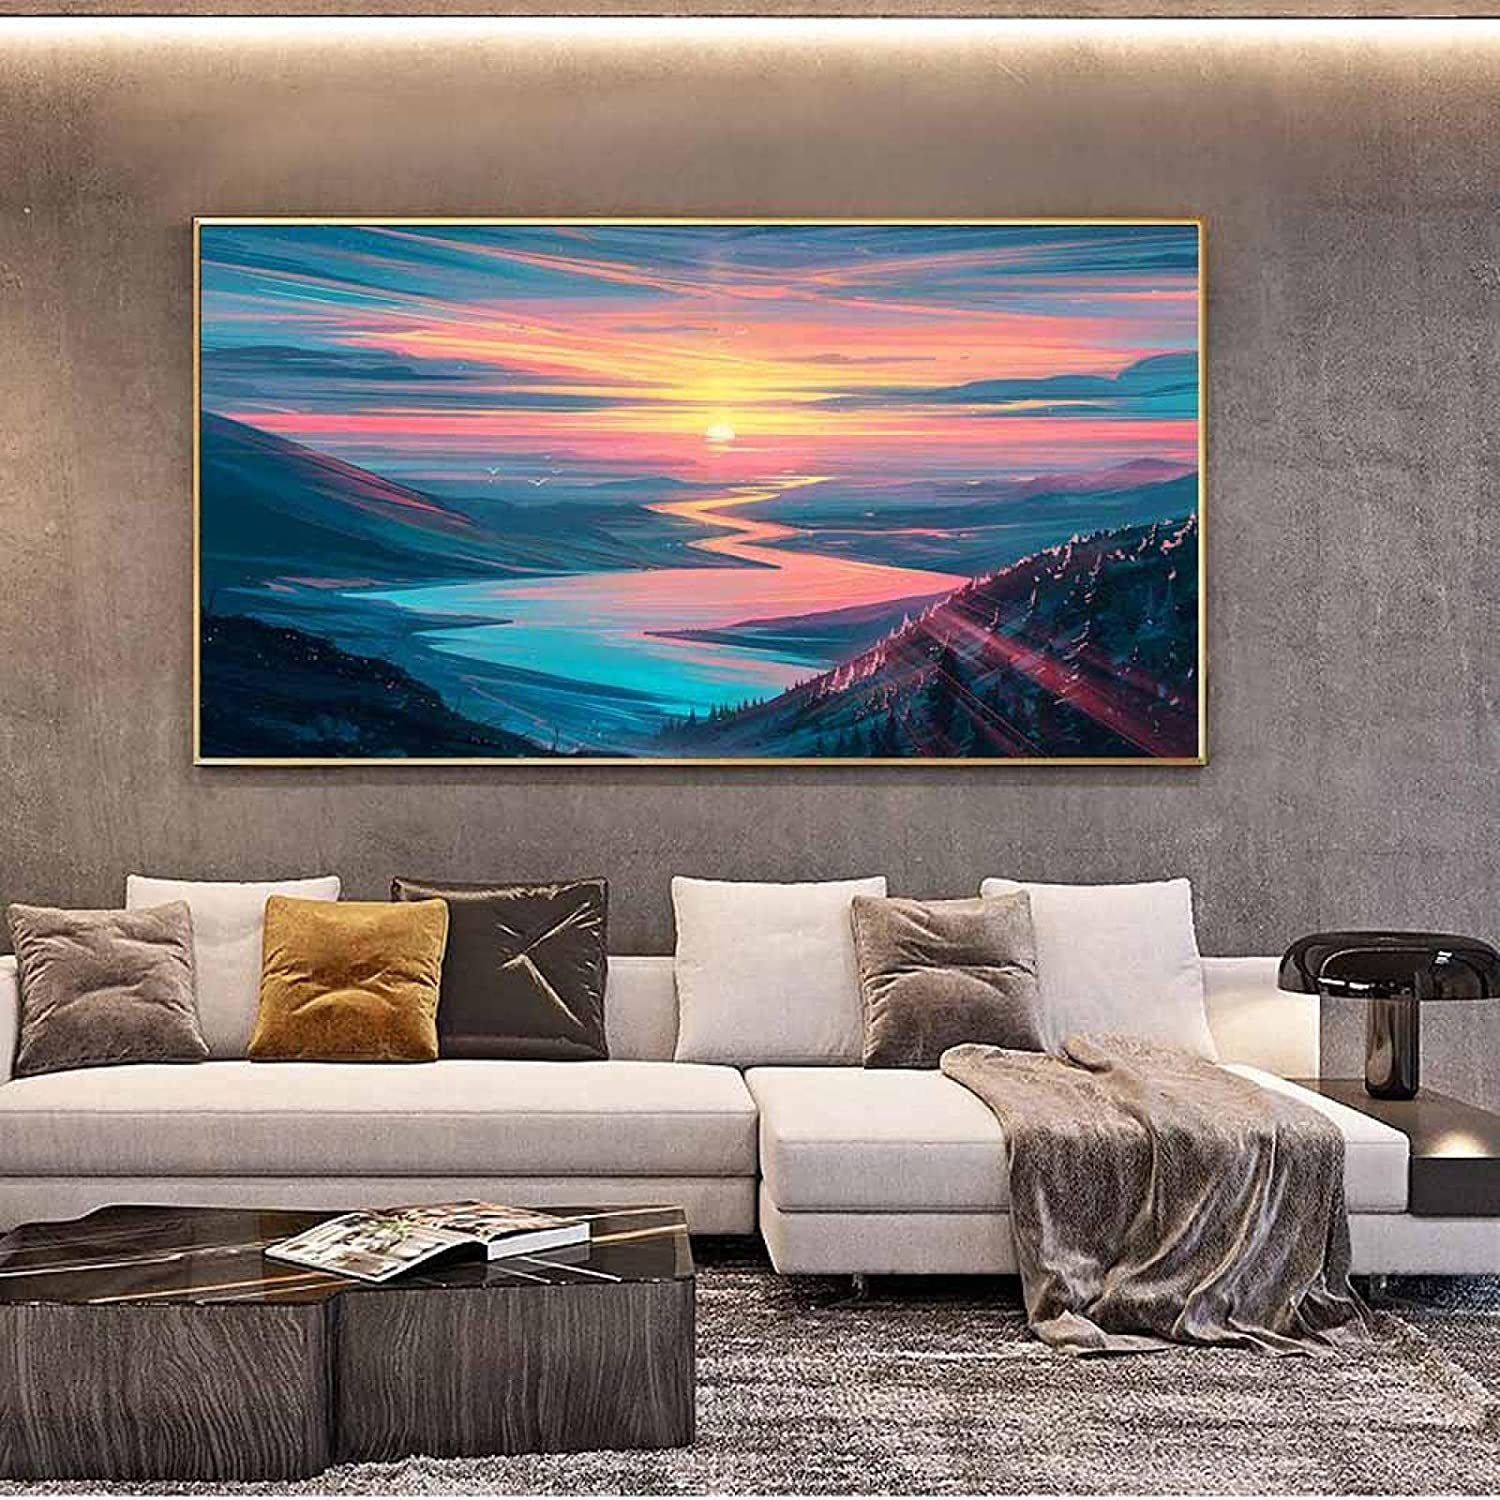 Limited time sale Scenery Wall Art Time sale Landscape Painting Ca Star Color Impression